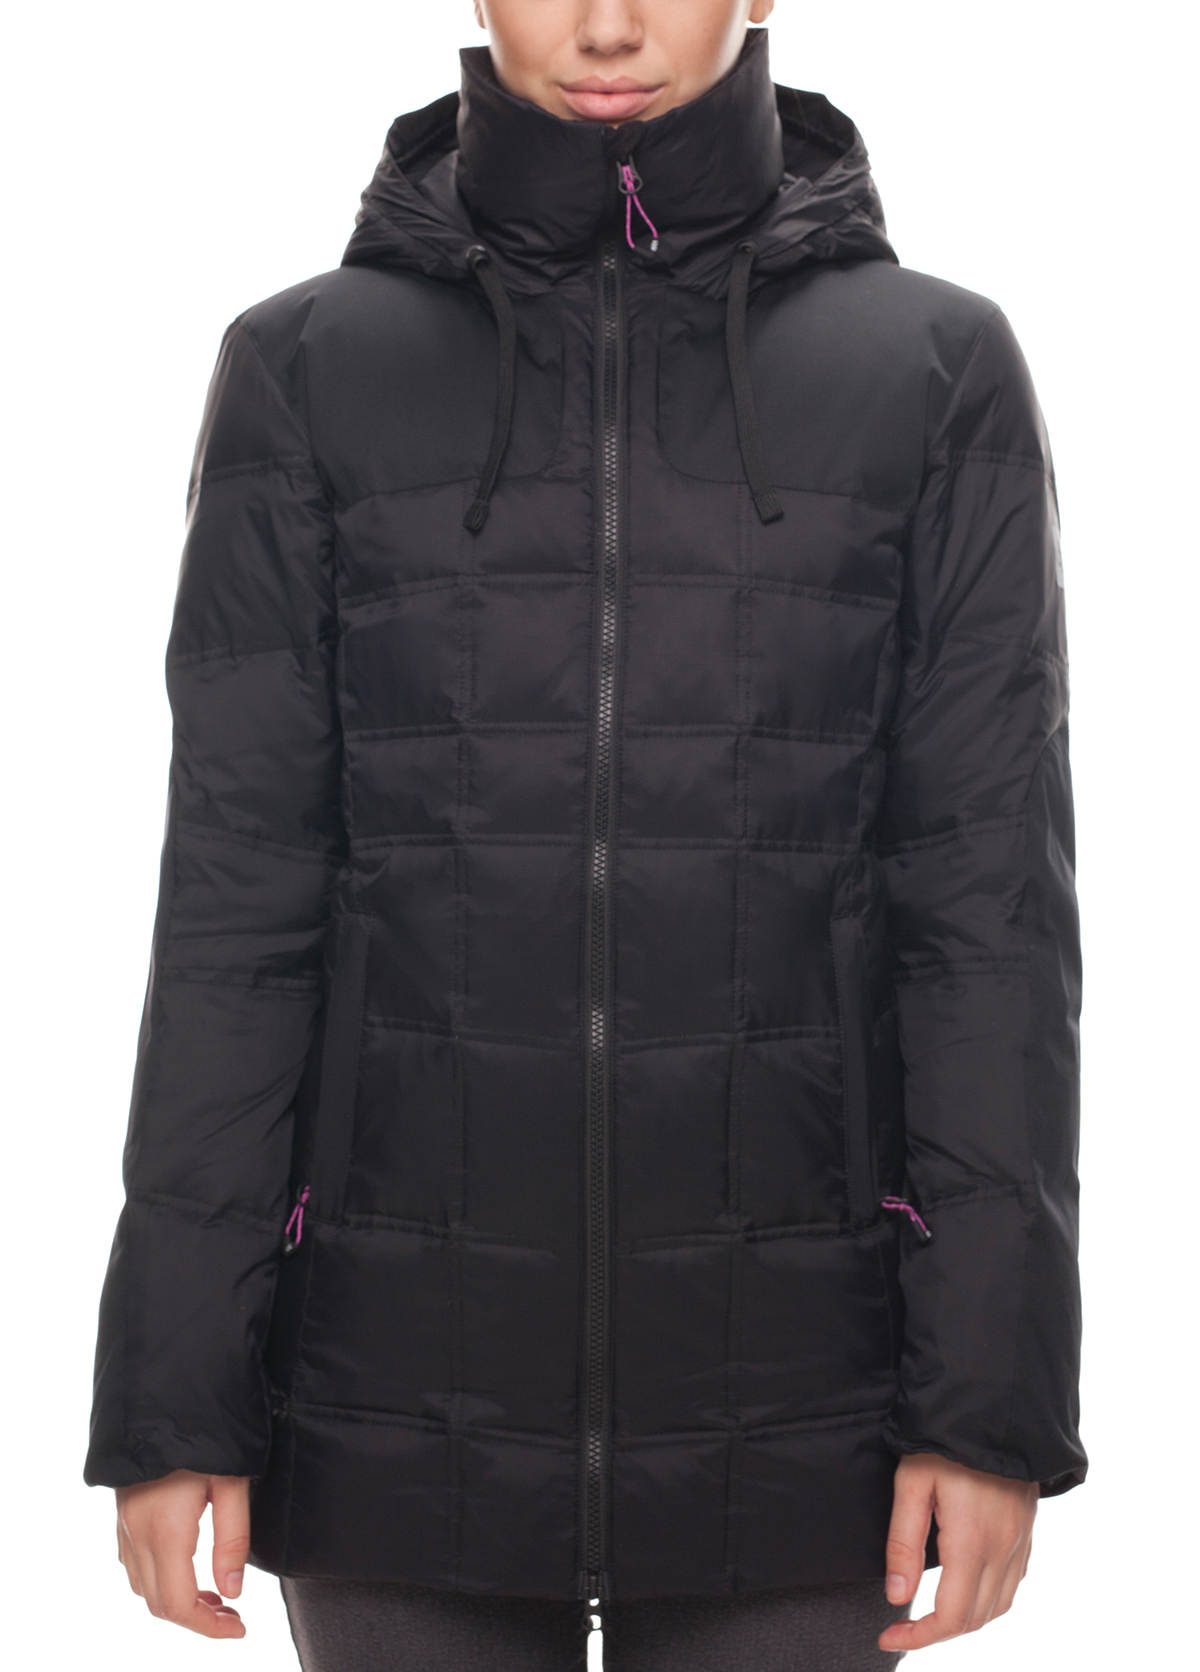 b1255af3f58 686 Womens GLCR Bliss Down Insulator Jacket - Black Small 2018 ...